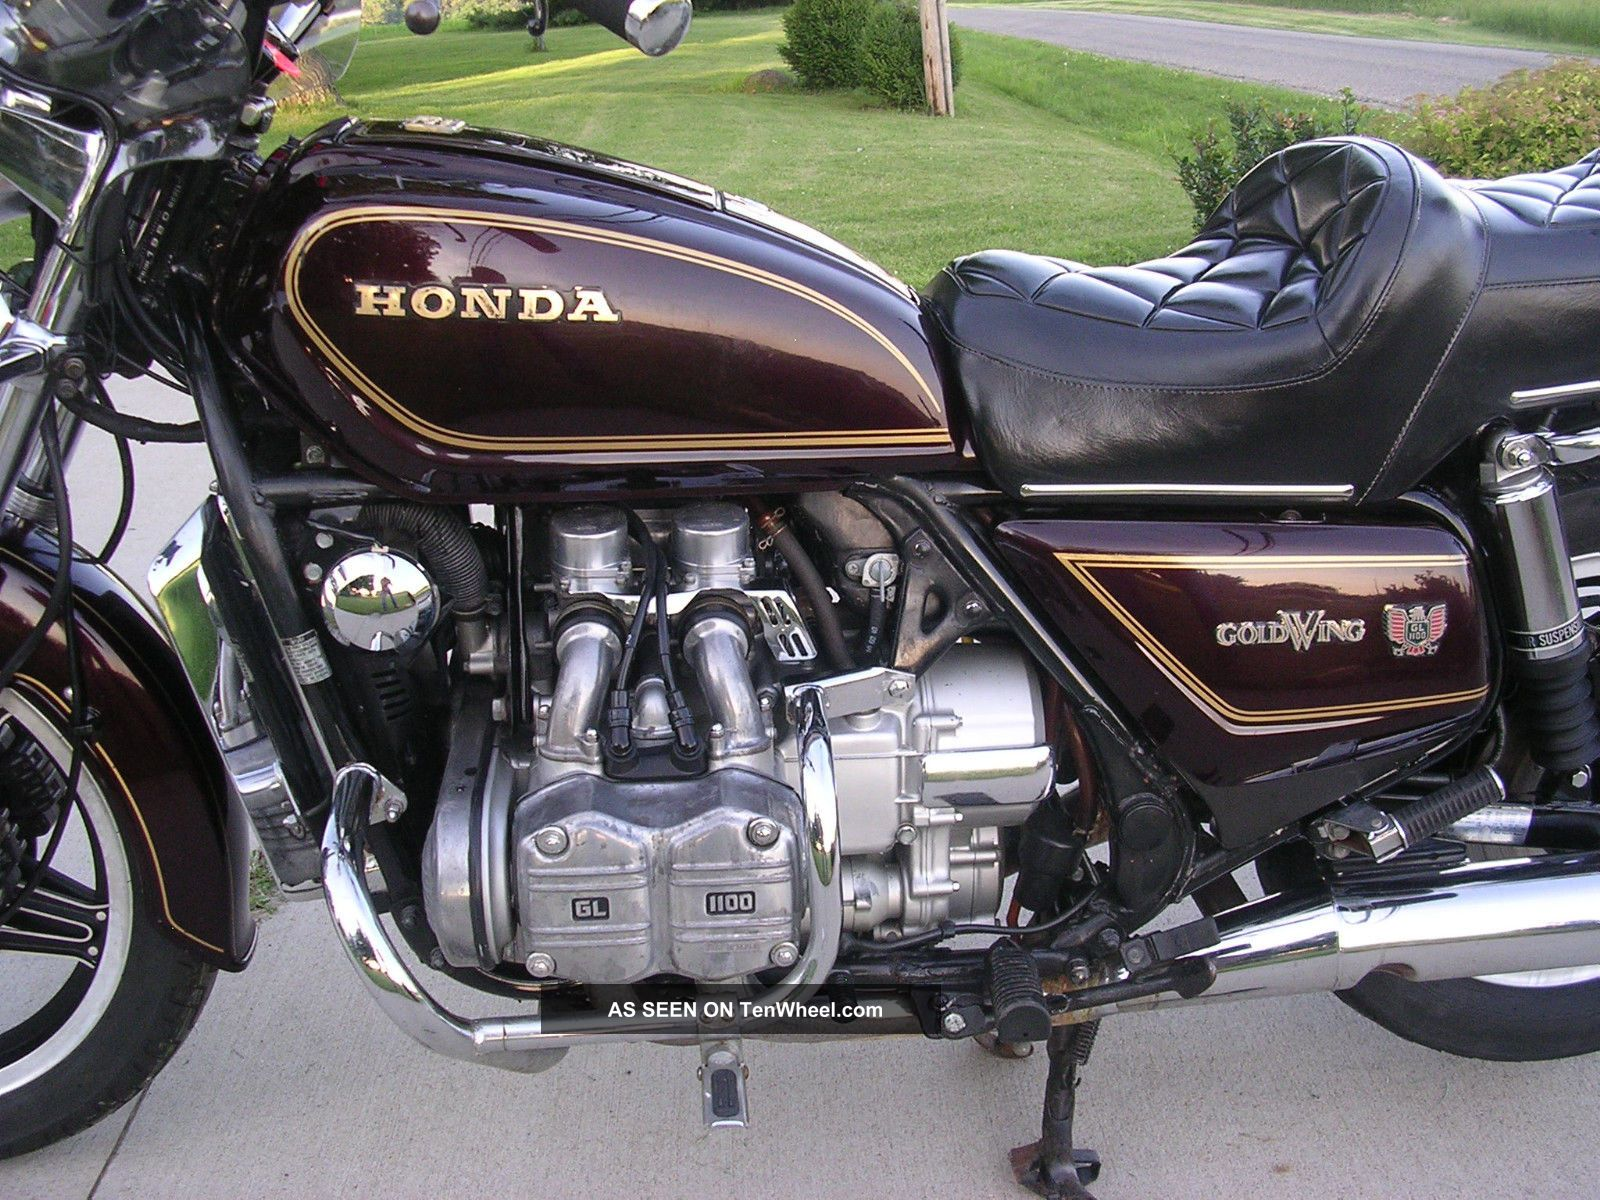 1981 Honda Gl1100 Interstate Wiring Diagrams Opinions About Goldwing Gl1000 Diagram Trusted Rh Dafpods Co 1982 81